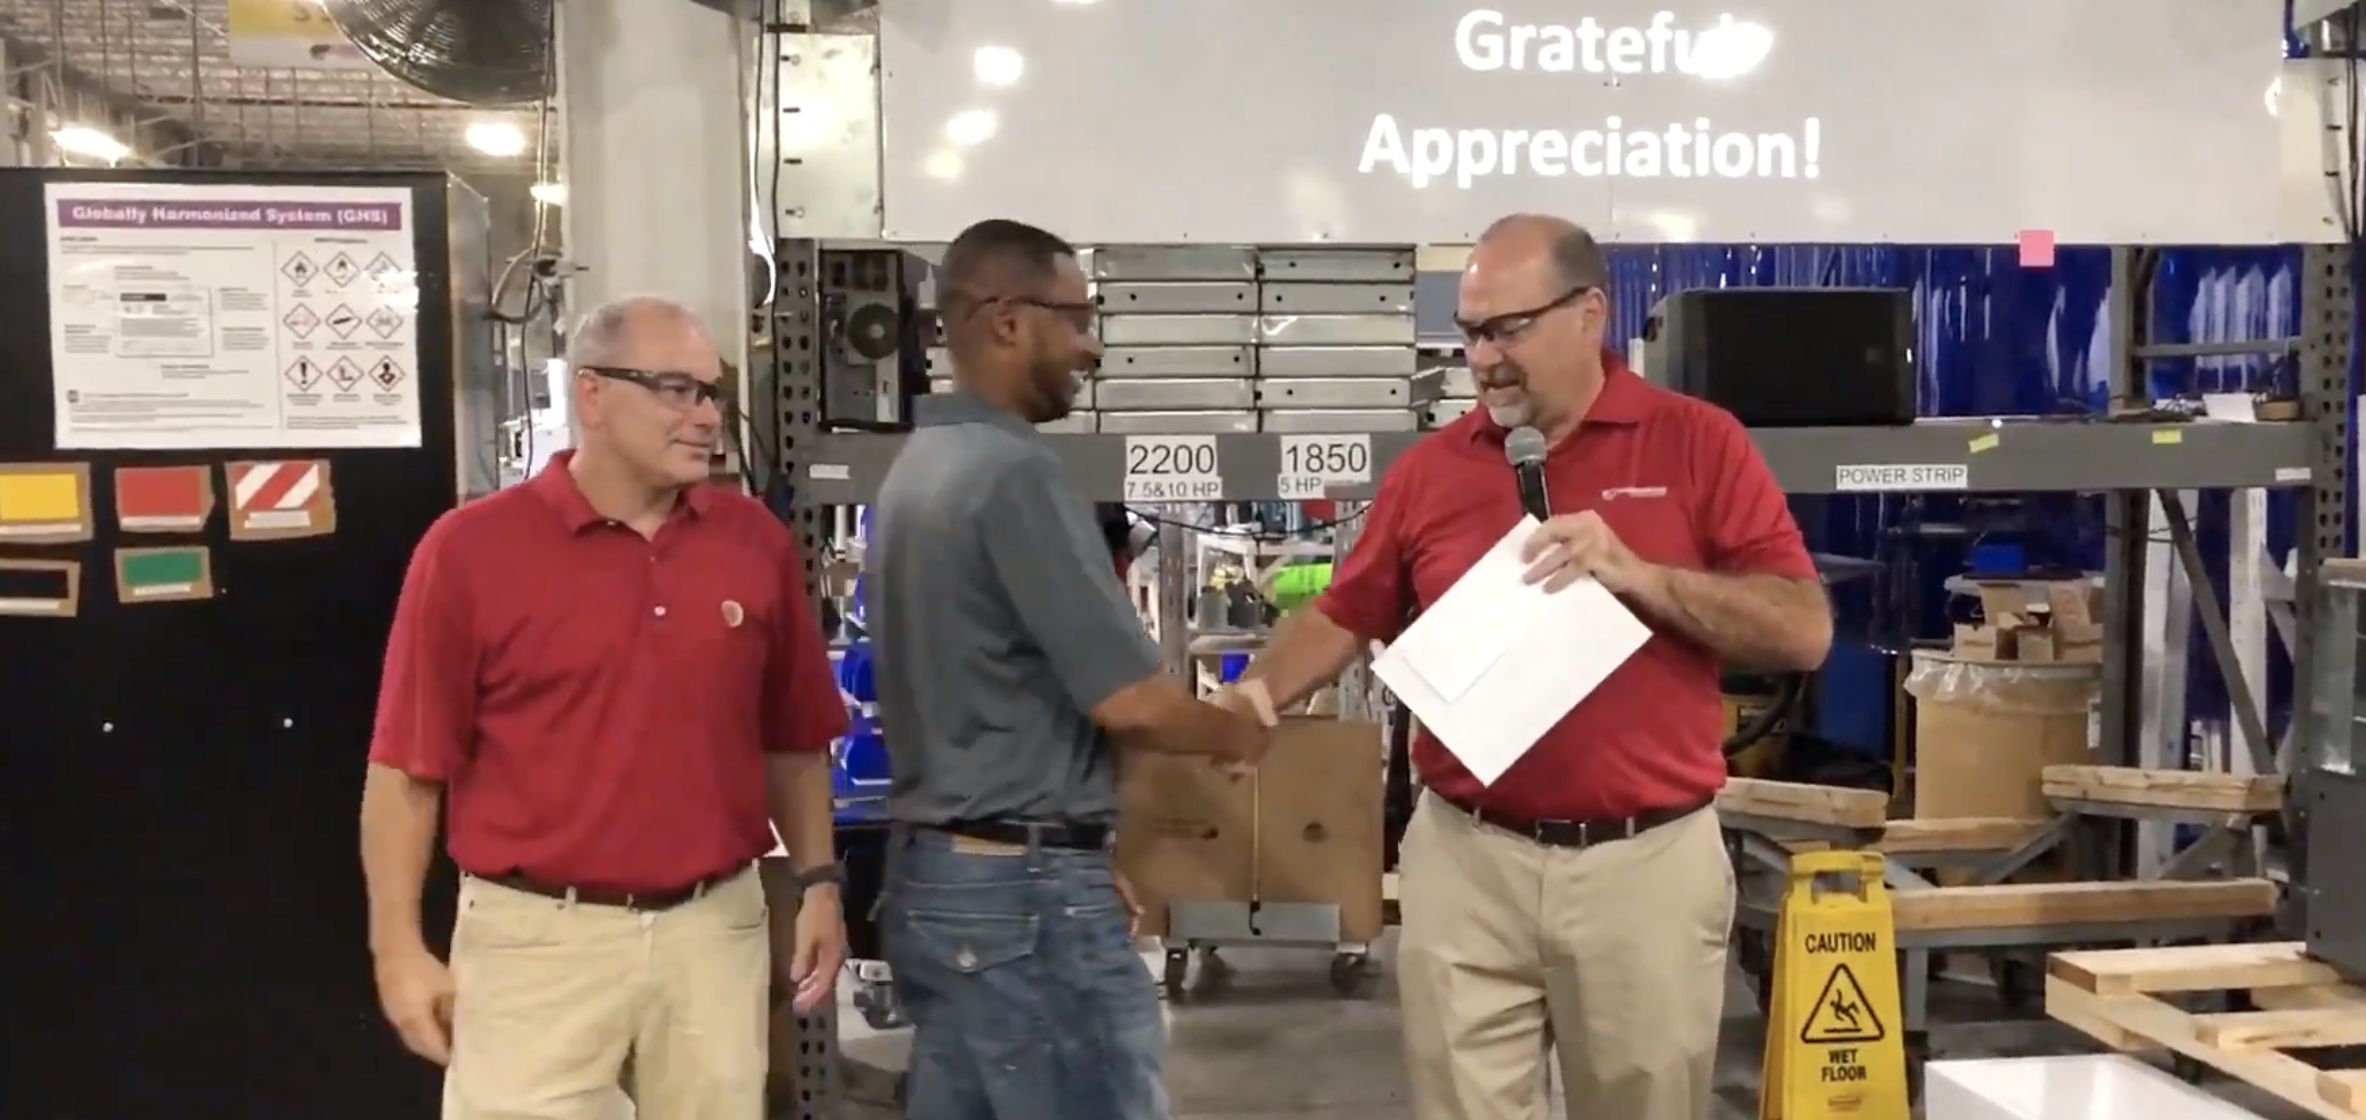 Grateful Appreciation Culture - Cambridge Air Solutions